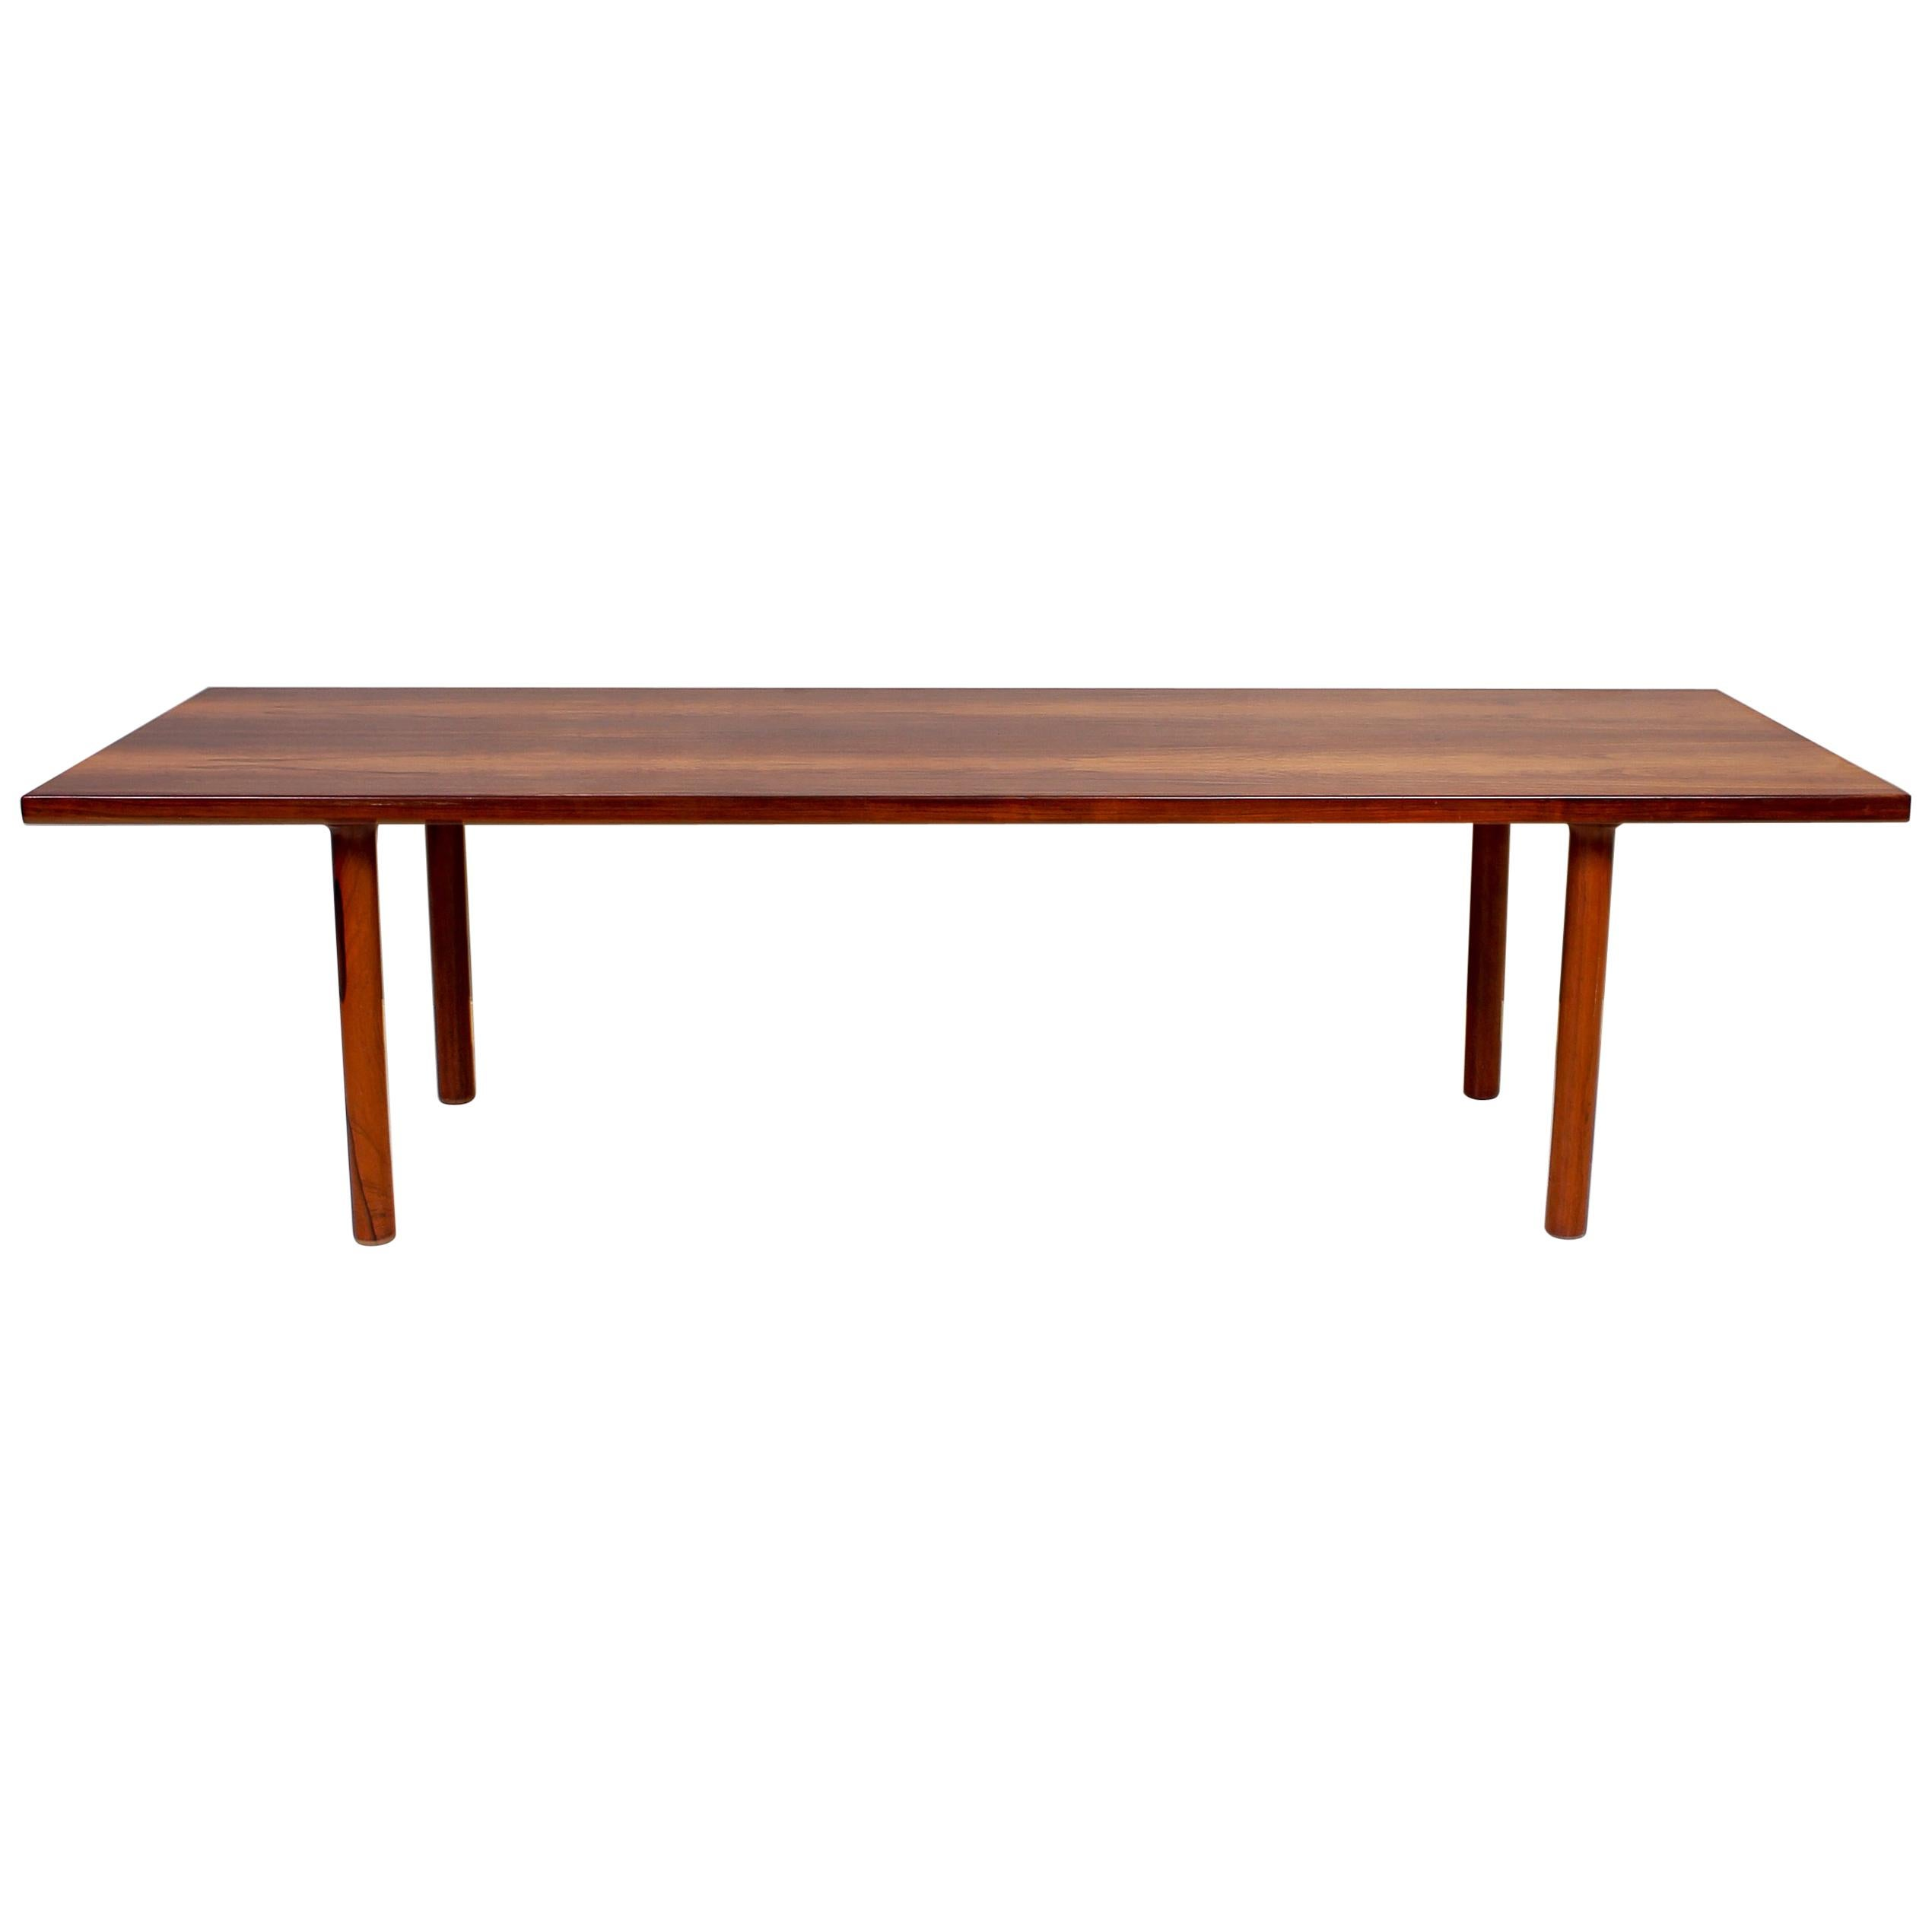 Hans J Wegner Rosewood Coffee Table by Andreas Tuck, 1950s